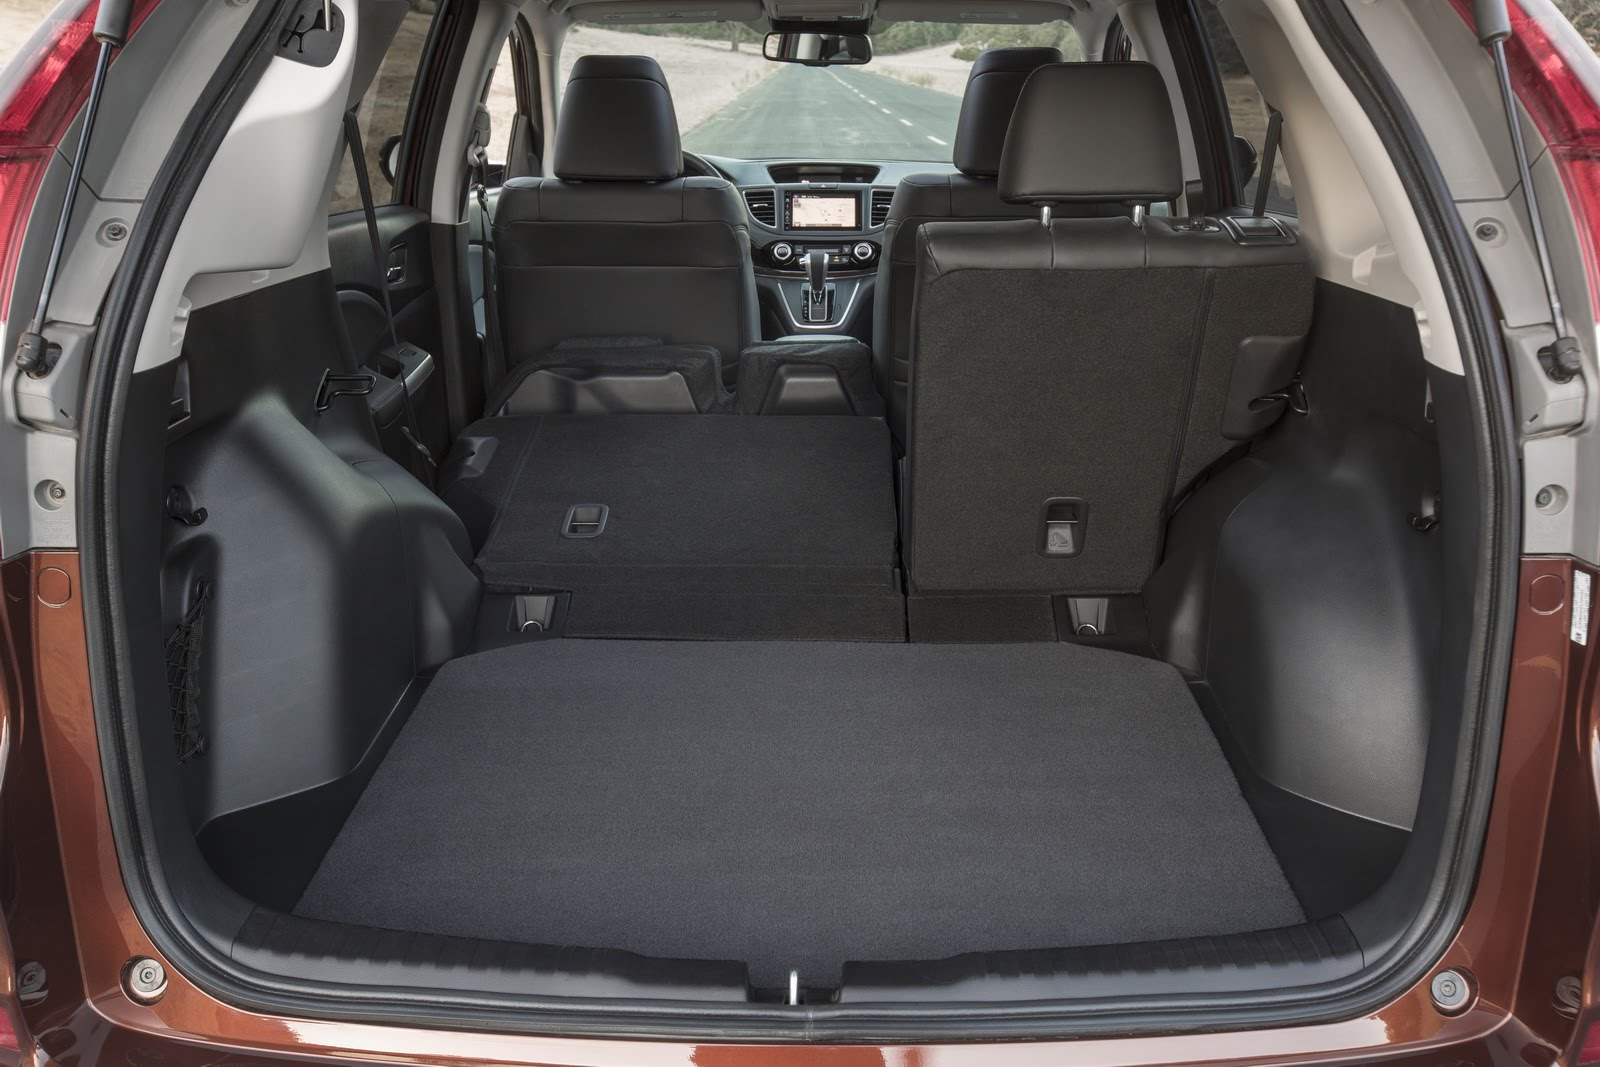 astounding-design-of-the-black-seats-ideas-added-with-black-floor-ideas-as-the-honda-cr-v-2015-interior